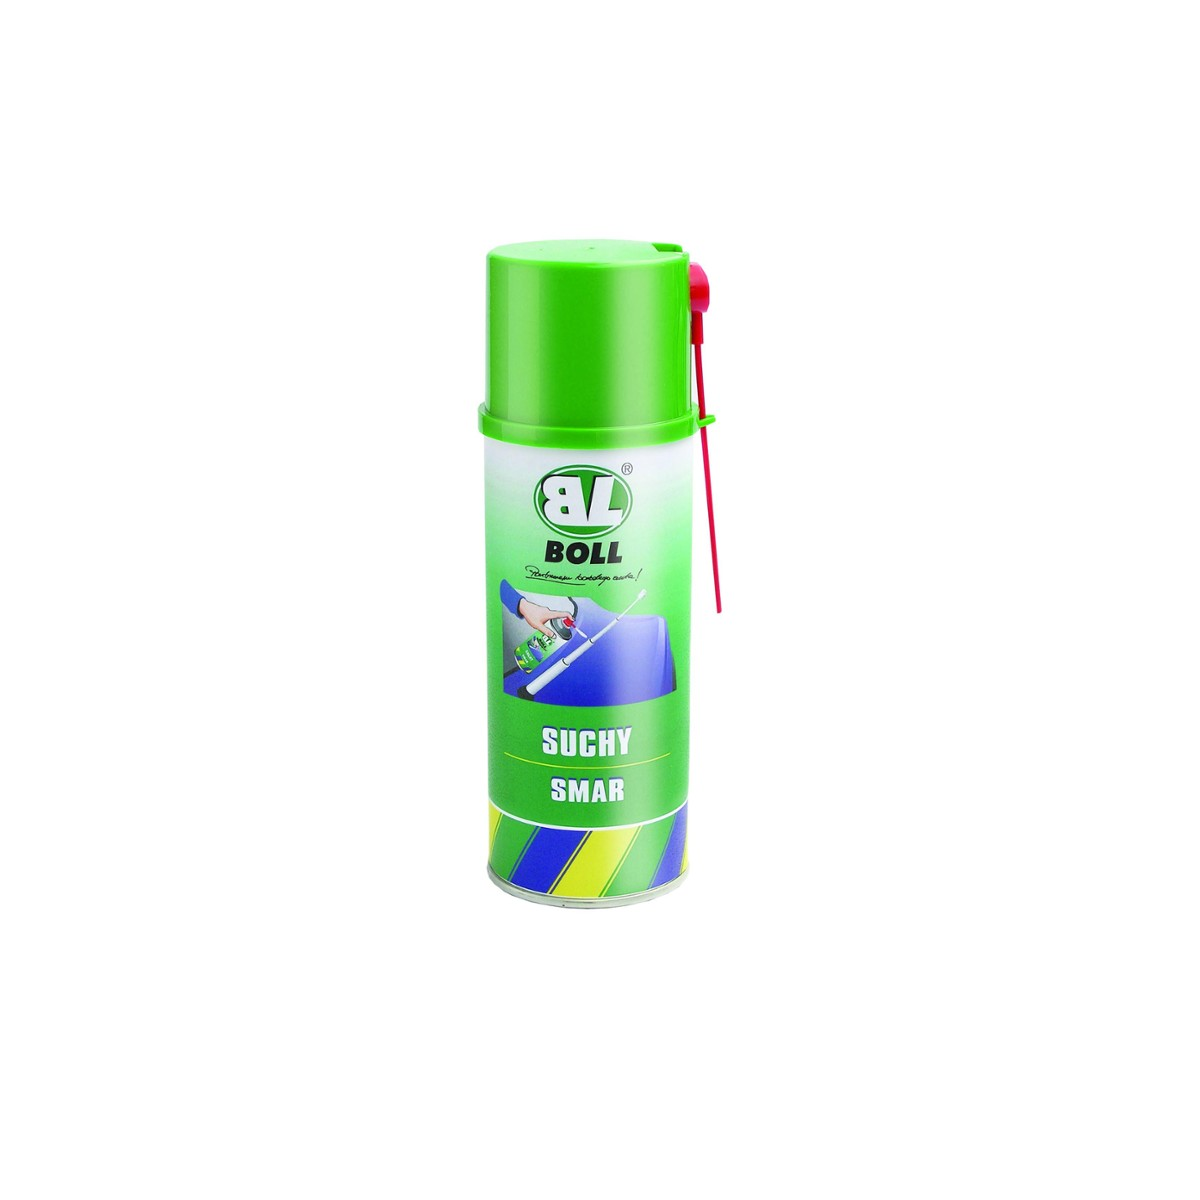 BOLL smar suchy - spray 400 ml